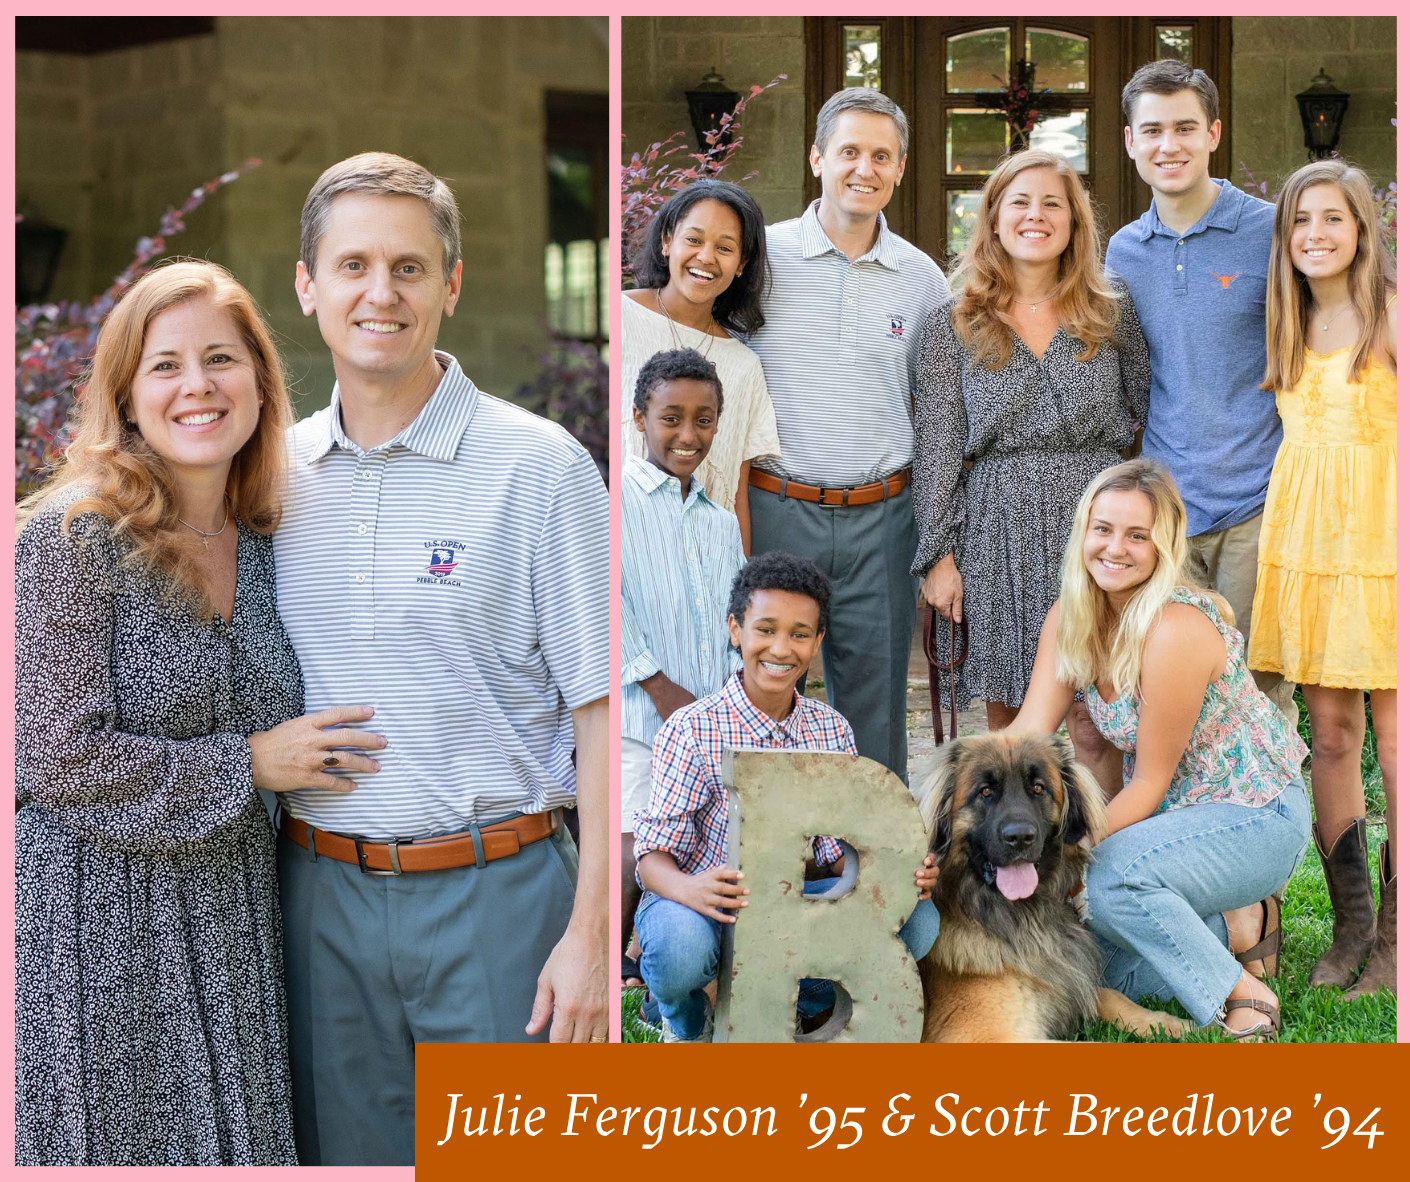 Collage of Julie Ferguson and Scott Breedlove and their family